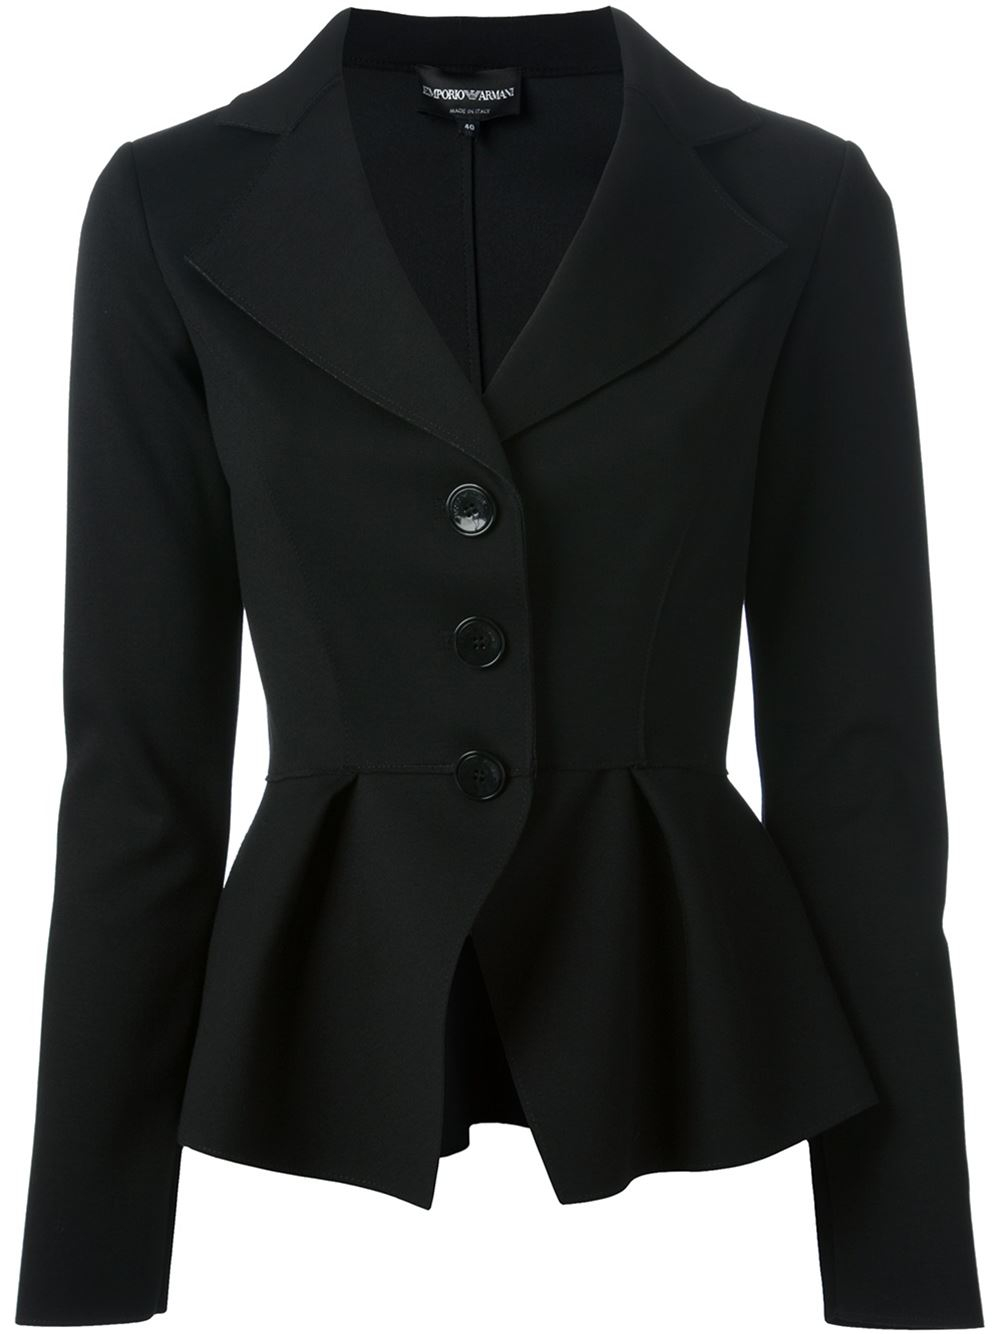 Shop black long sleeves peplum jacket at Neiman Marcus, where you will find free shipping on the latest in fashion from top designers.